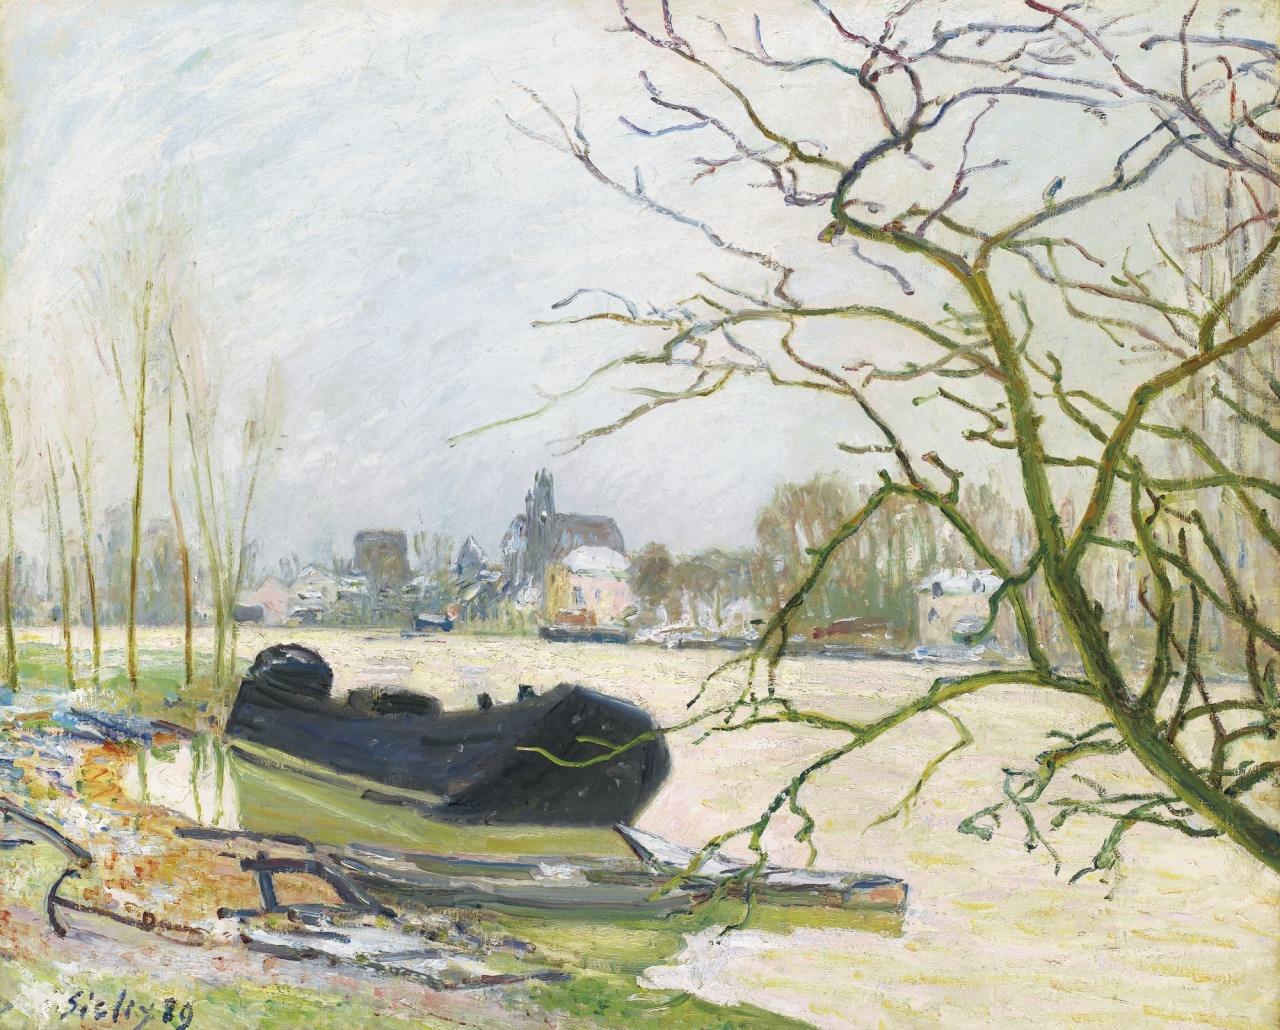 thunderstruck9:  Alfred Sisley (French, 1839-1899), La crue du Loing à Moret [Flooding of the Loing at Moret], 1889. Oil on canvas, 59.9 x 73 cm.